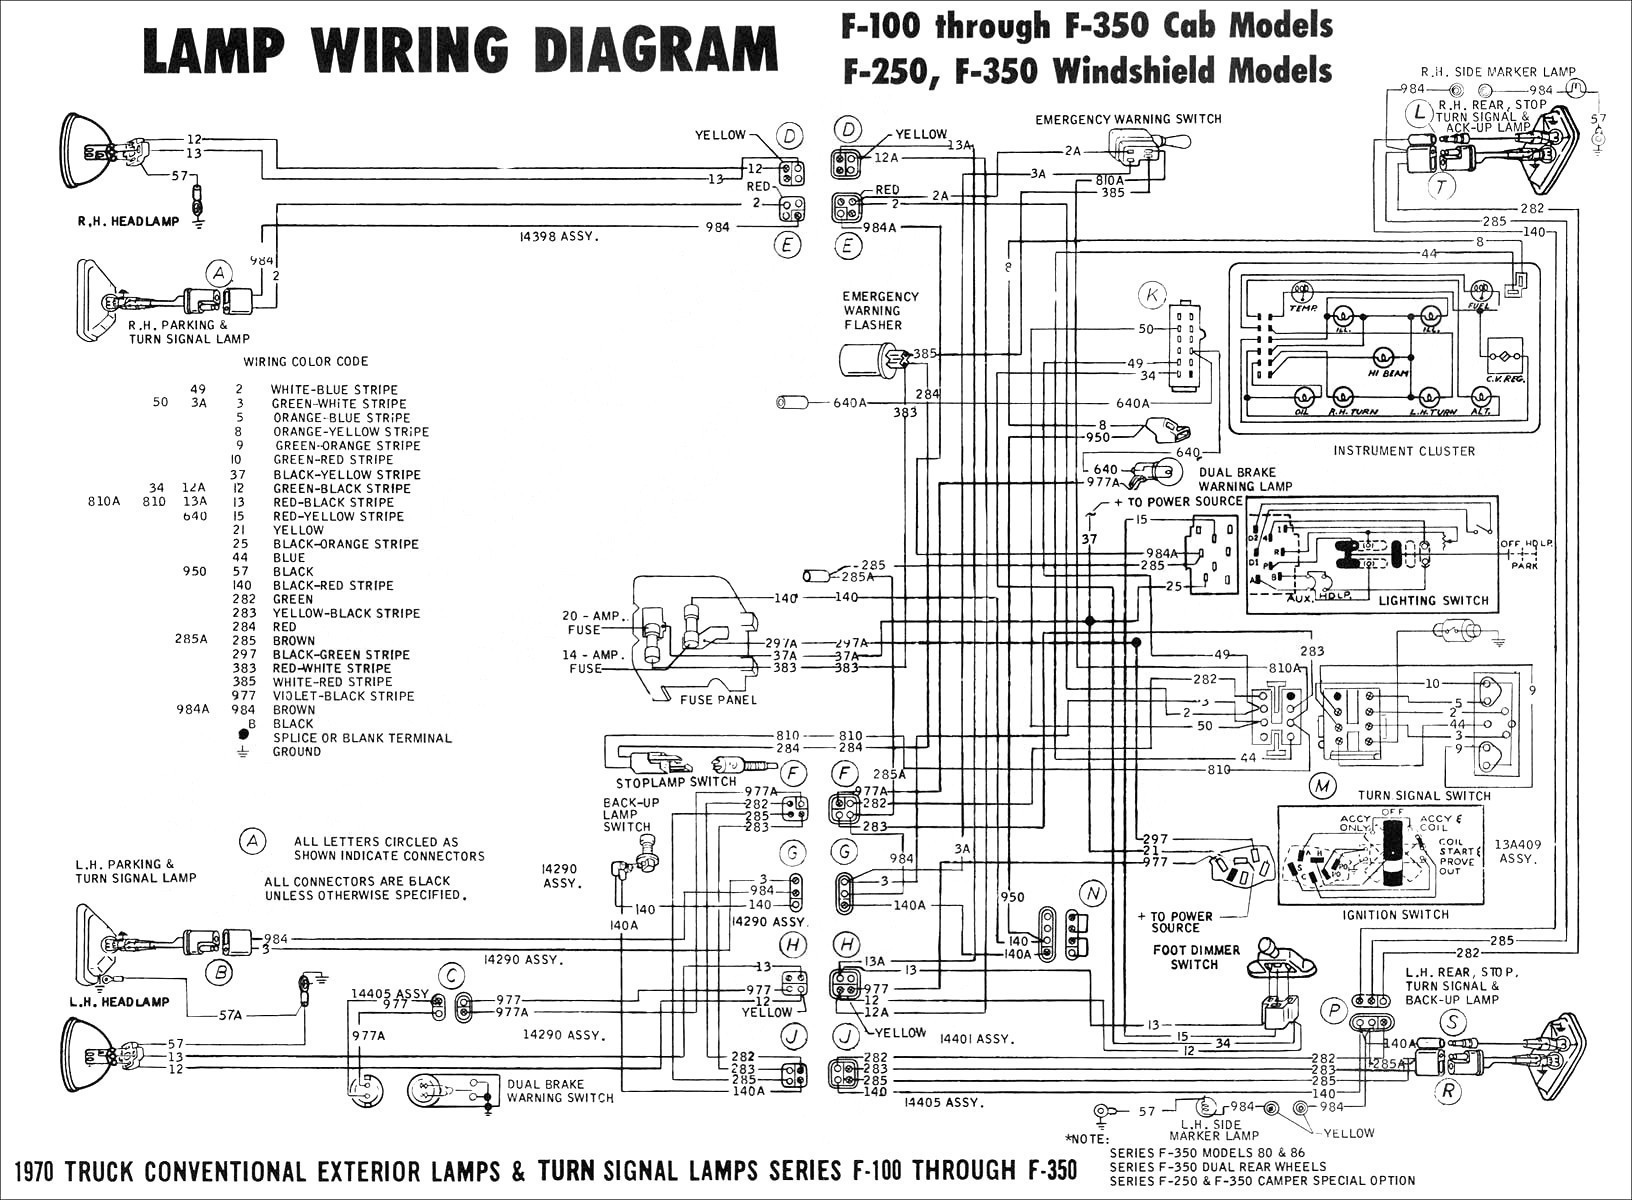 hyundai entourage headlight switch wiring diagram schematics rh parntesis  co Halogen Headlight Wiring Diagrams Basic Headlight